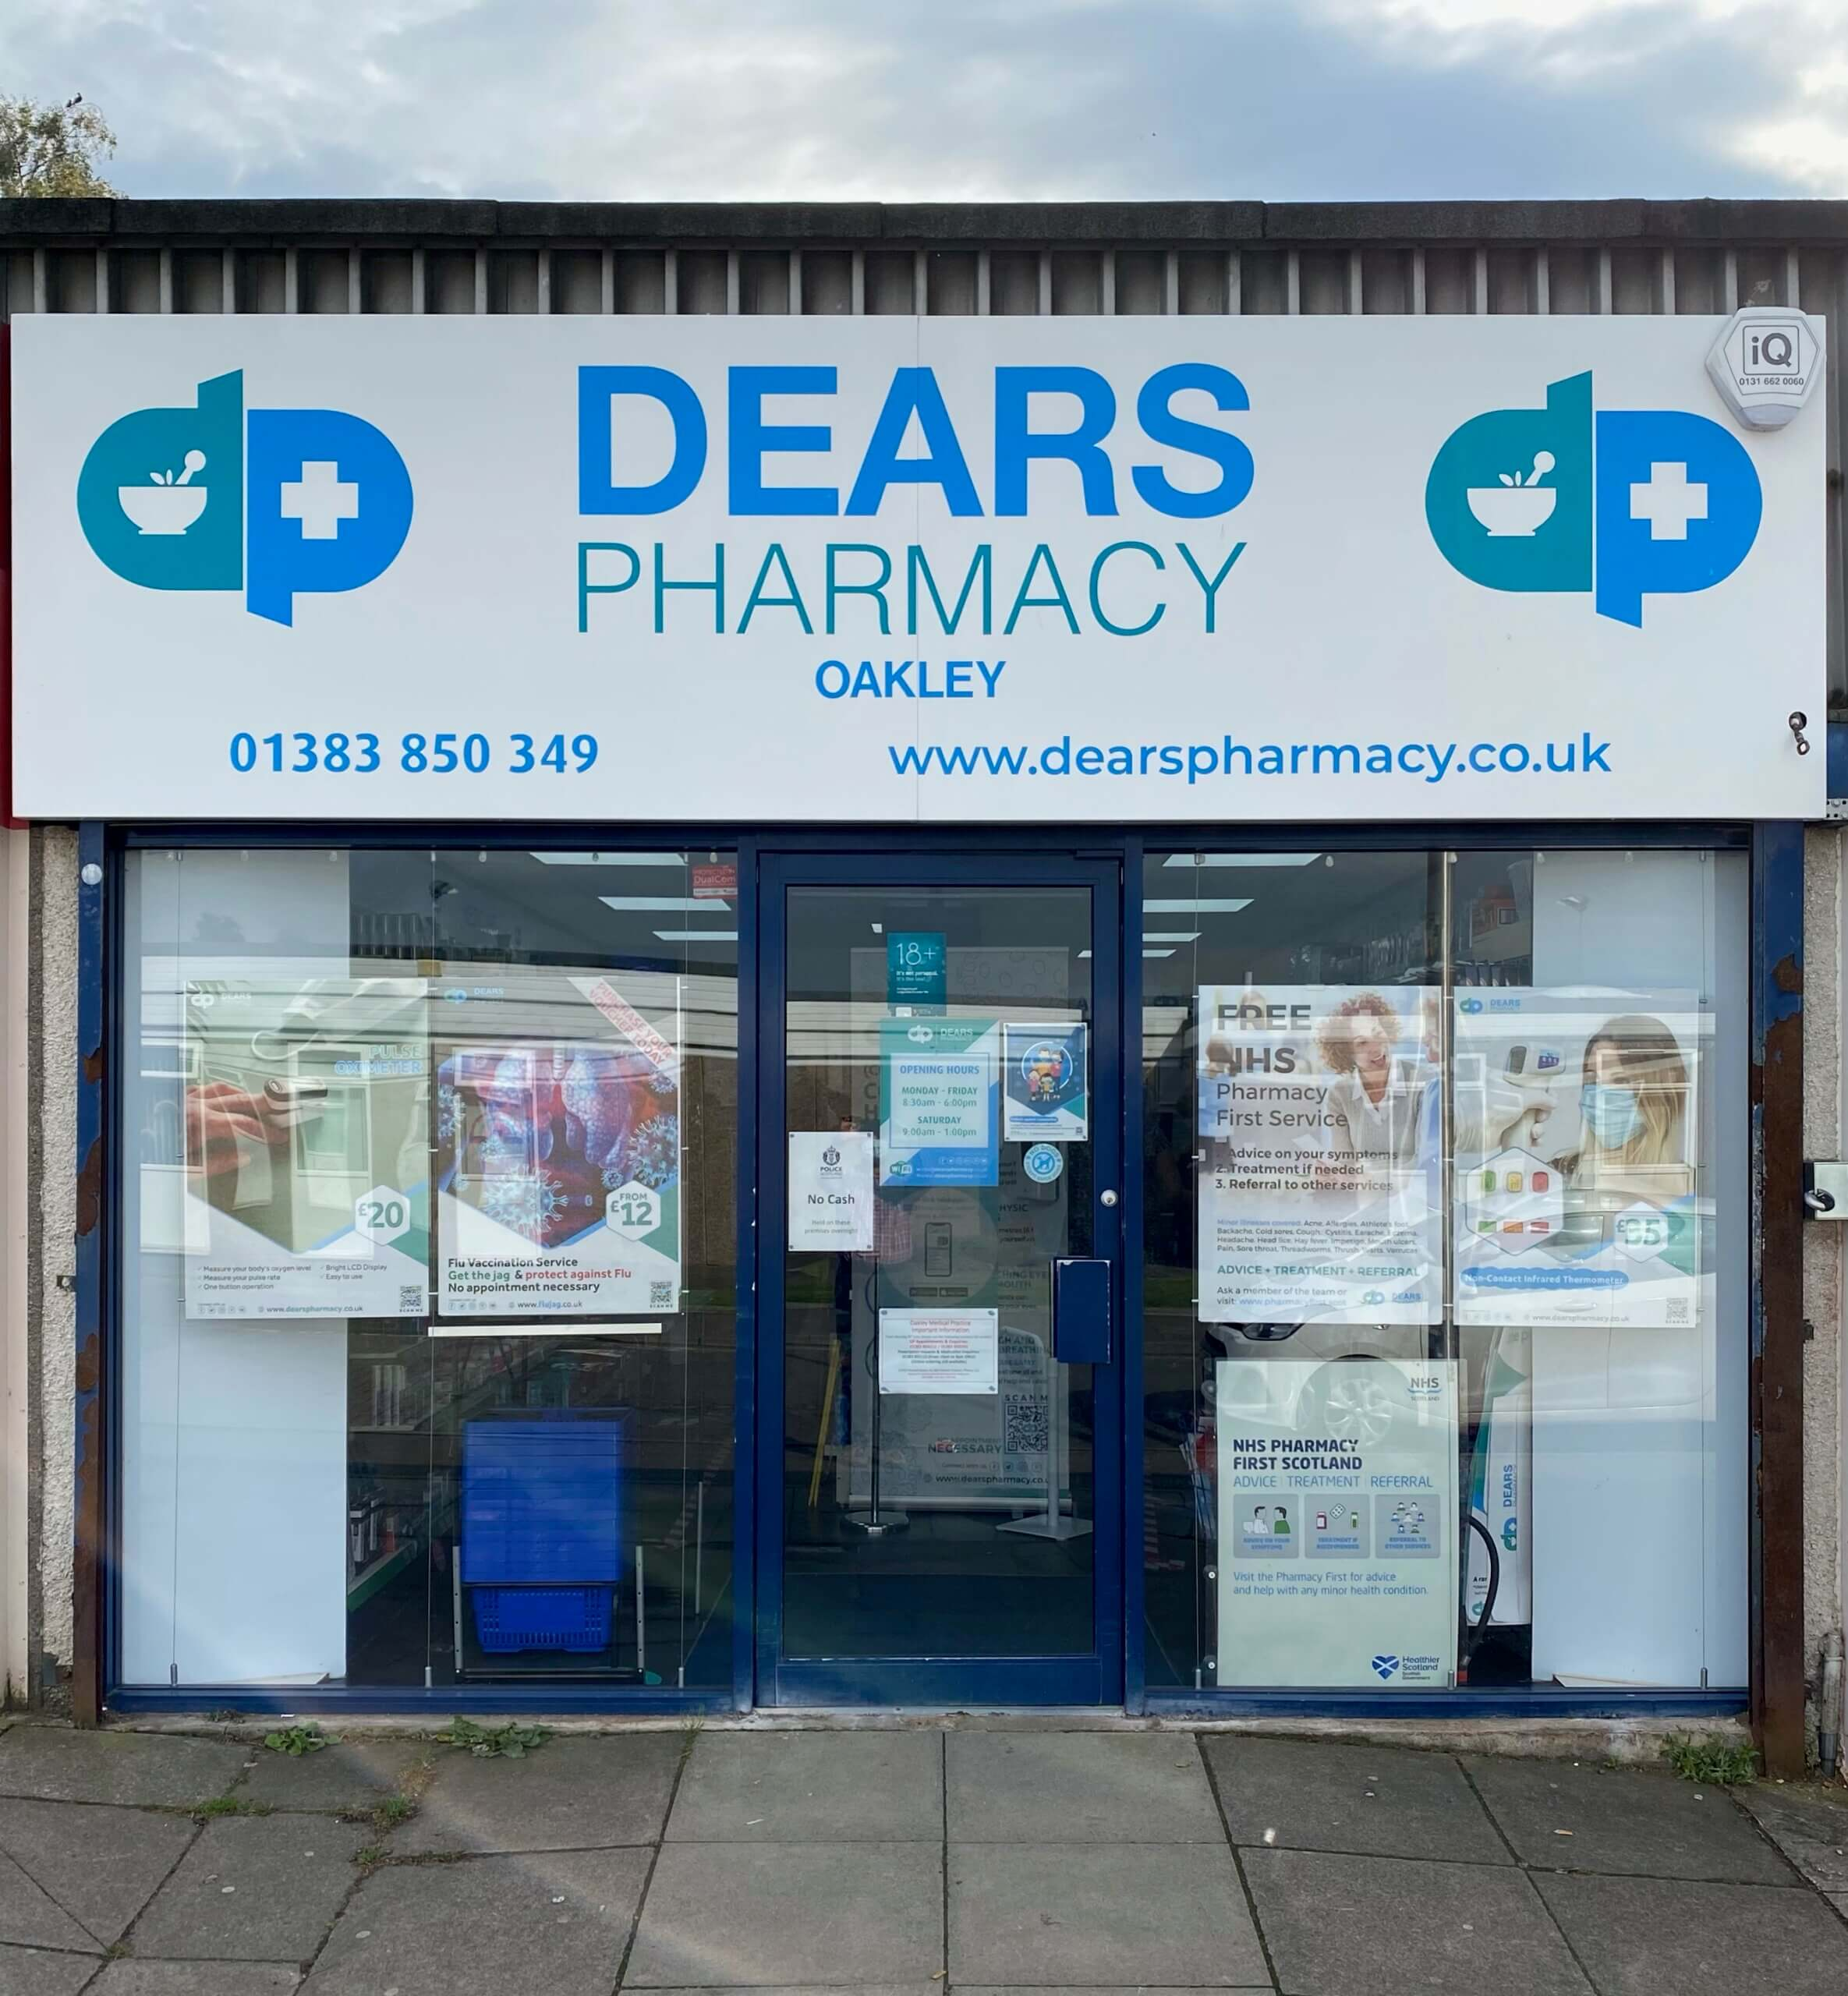 Dears Pharmacy Oakley